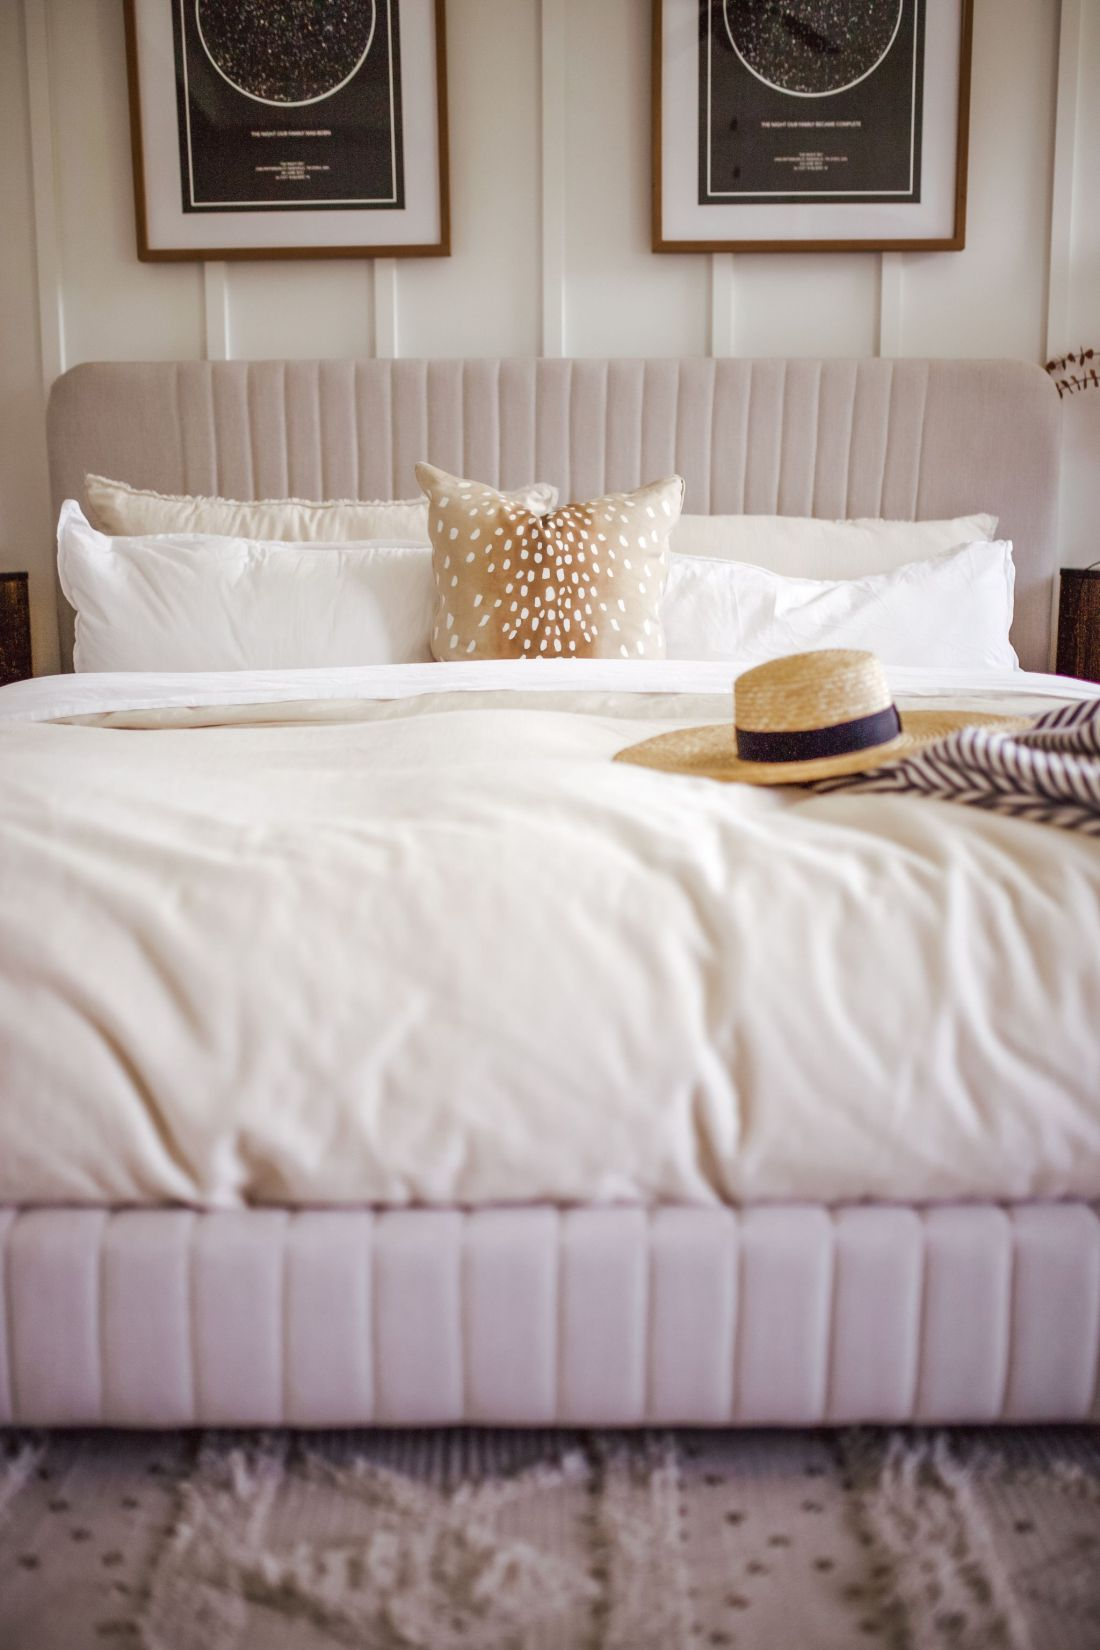 master bedroom refresh   Master Bedroom Remodel Ideas by popular Nashville life and style blog, Modern Day Moguls: image of a master bedroom with a velvet bed frame, white bedding and a antelope print throw pillow.